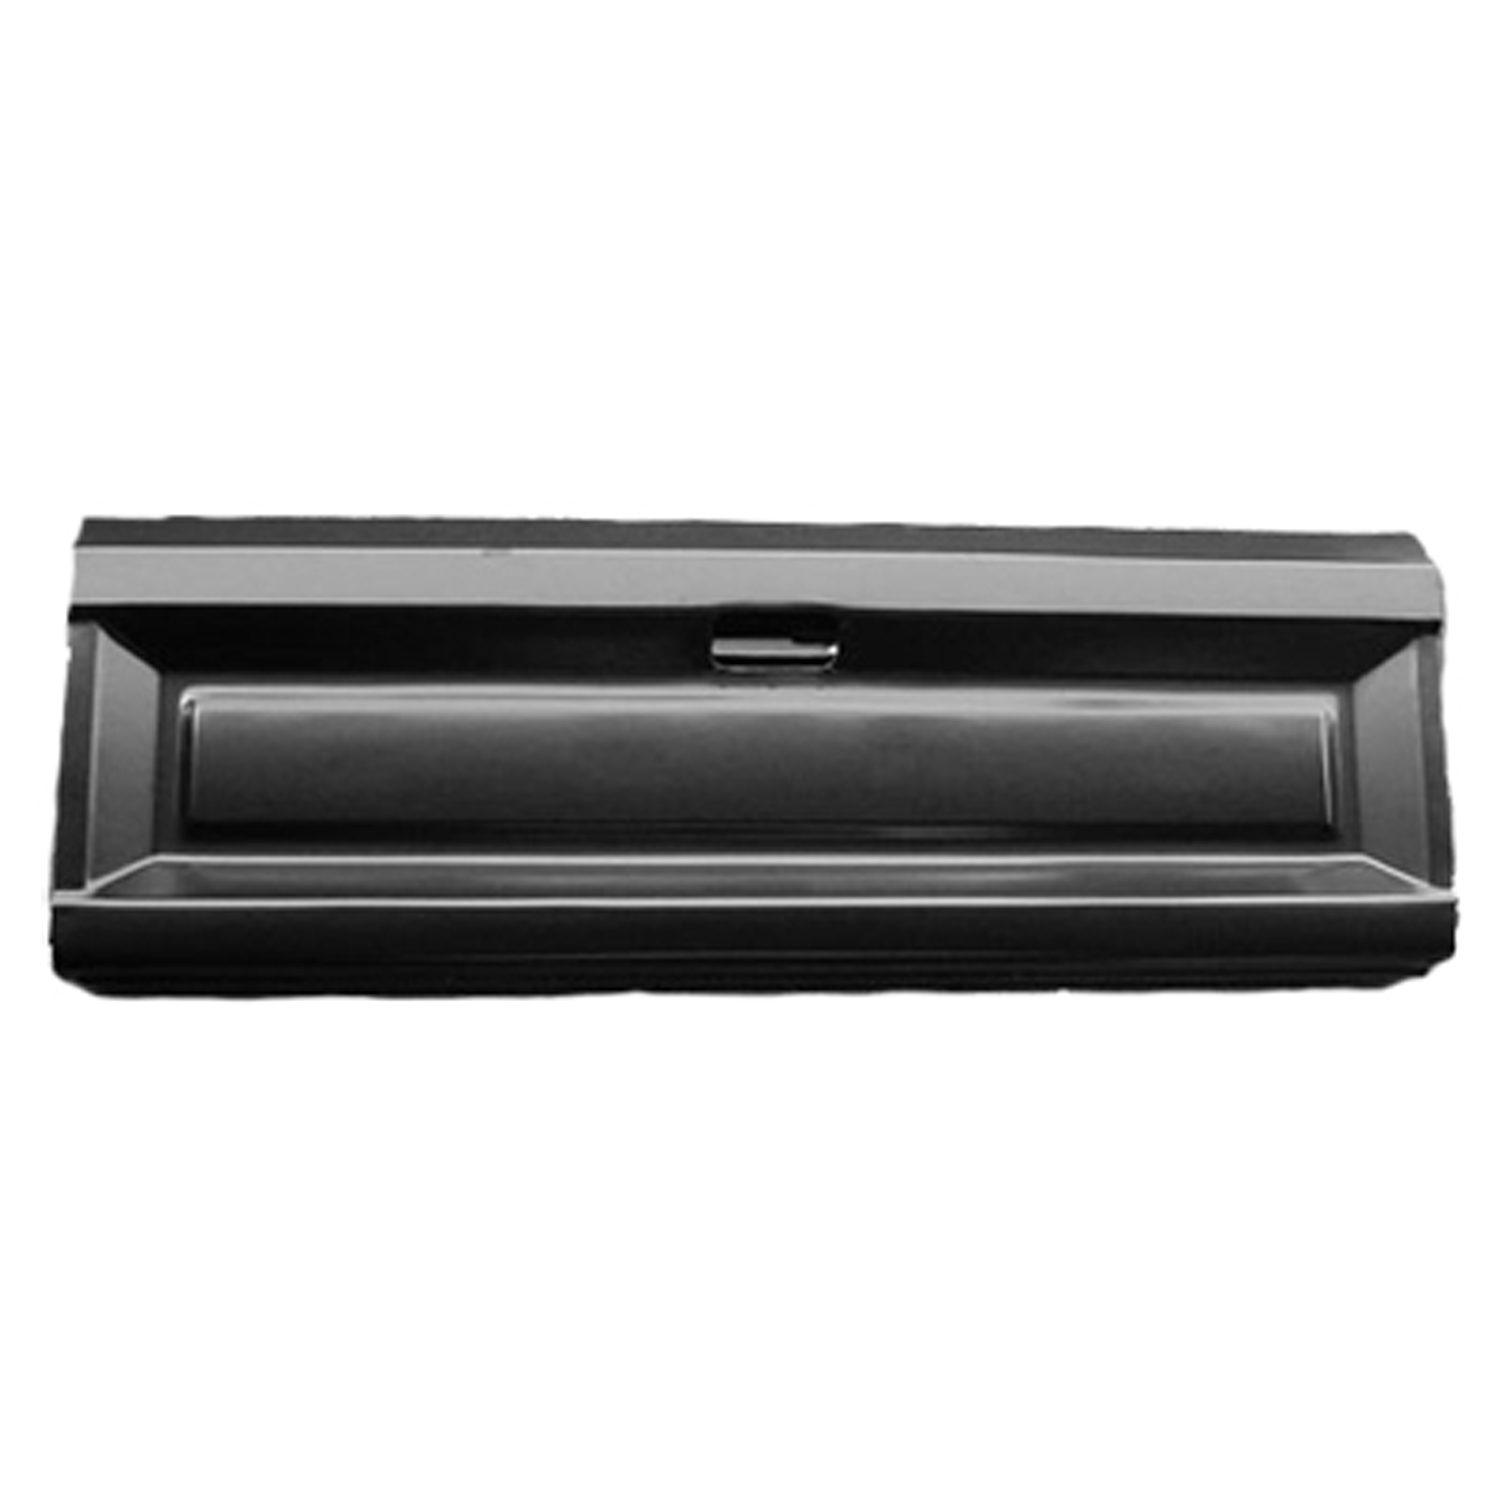 New Tailgate For Ford F-150 1980-1986 FO1900103